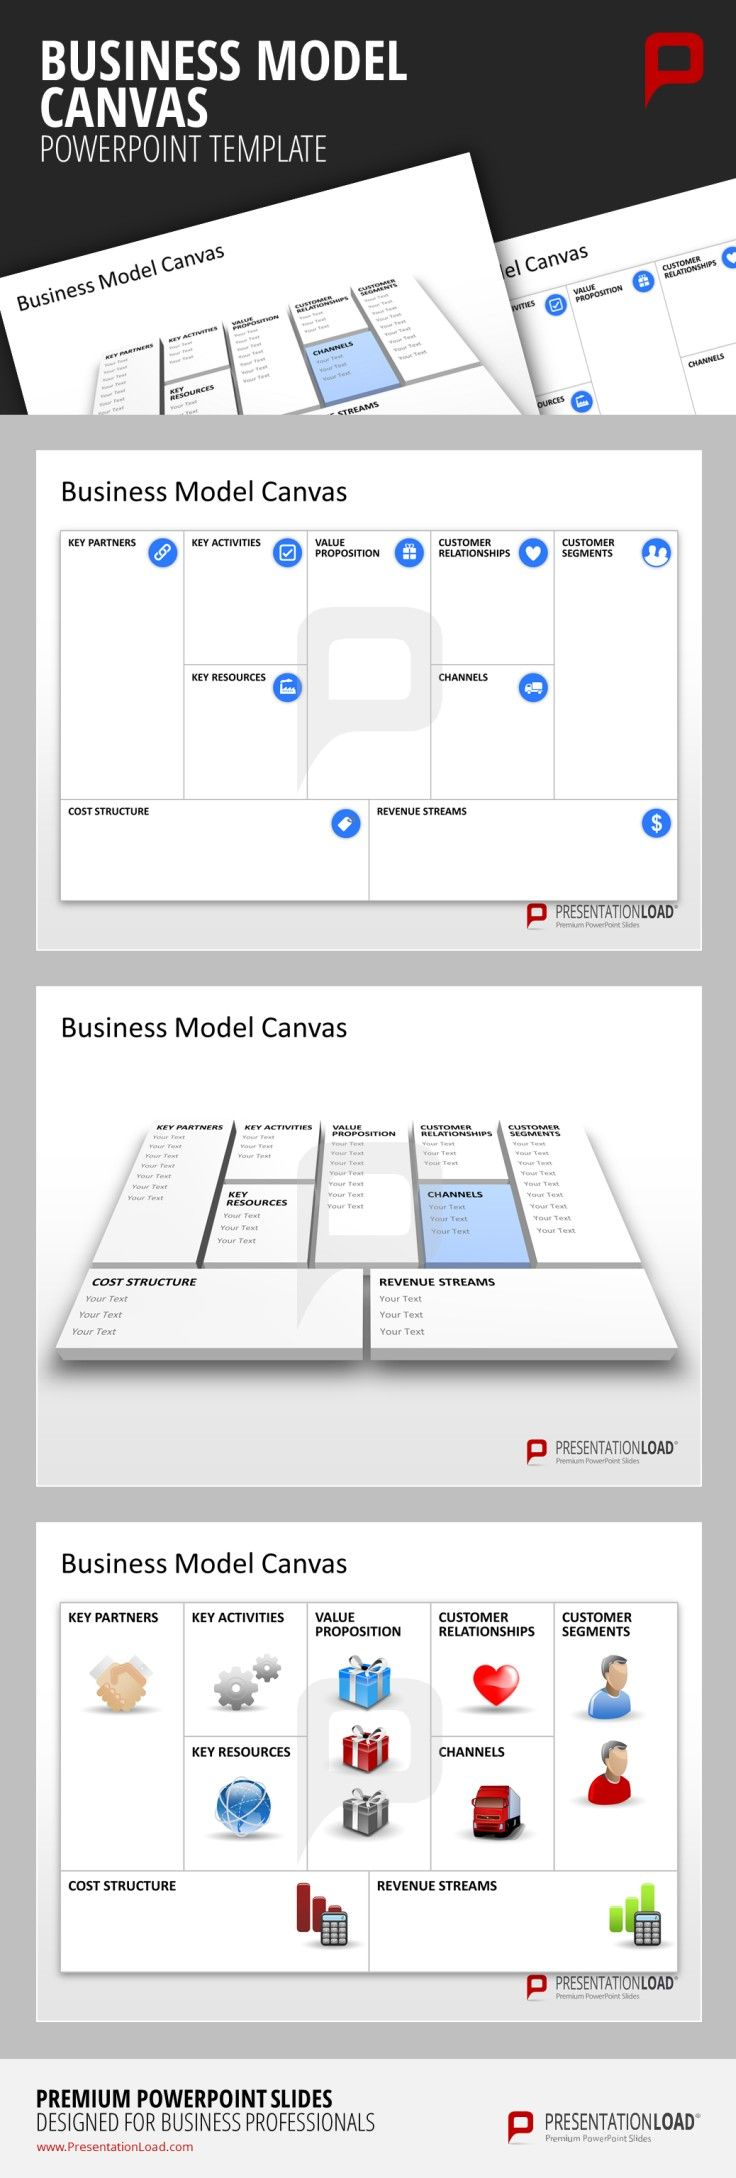 37 best business model canvas powerpoint templates images on business model canvas powerpoint template start with your business model ideas today and work through your personal business model canvas directly in toneelgroepblik Choice Image